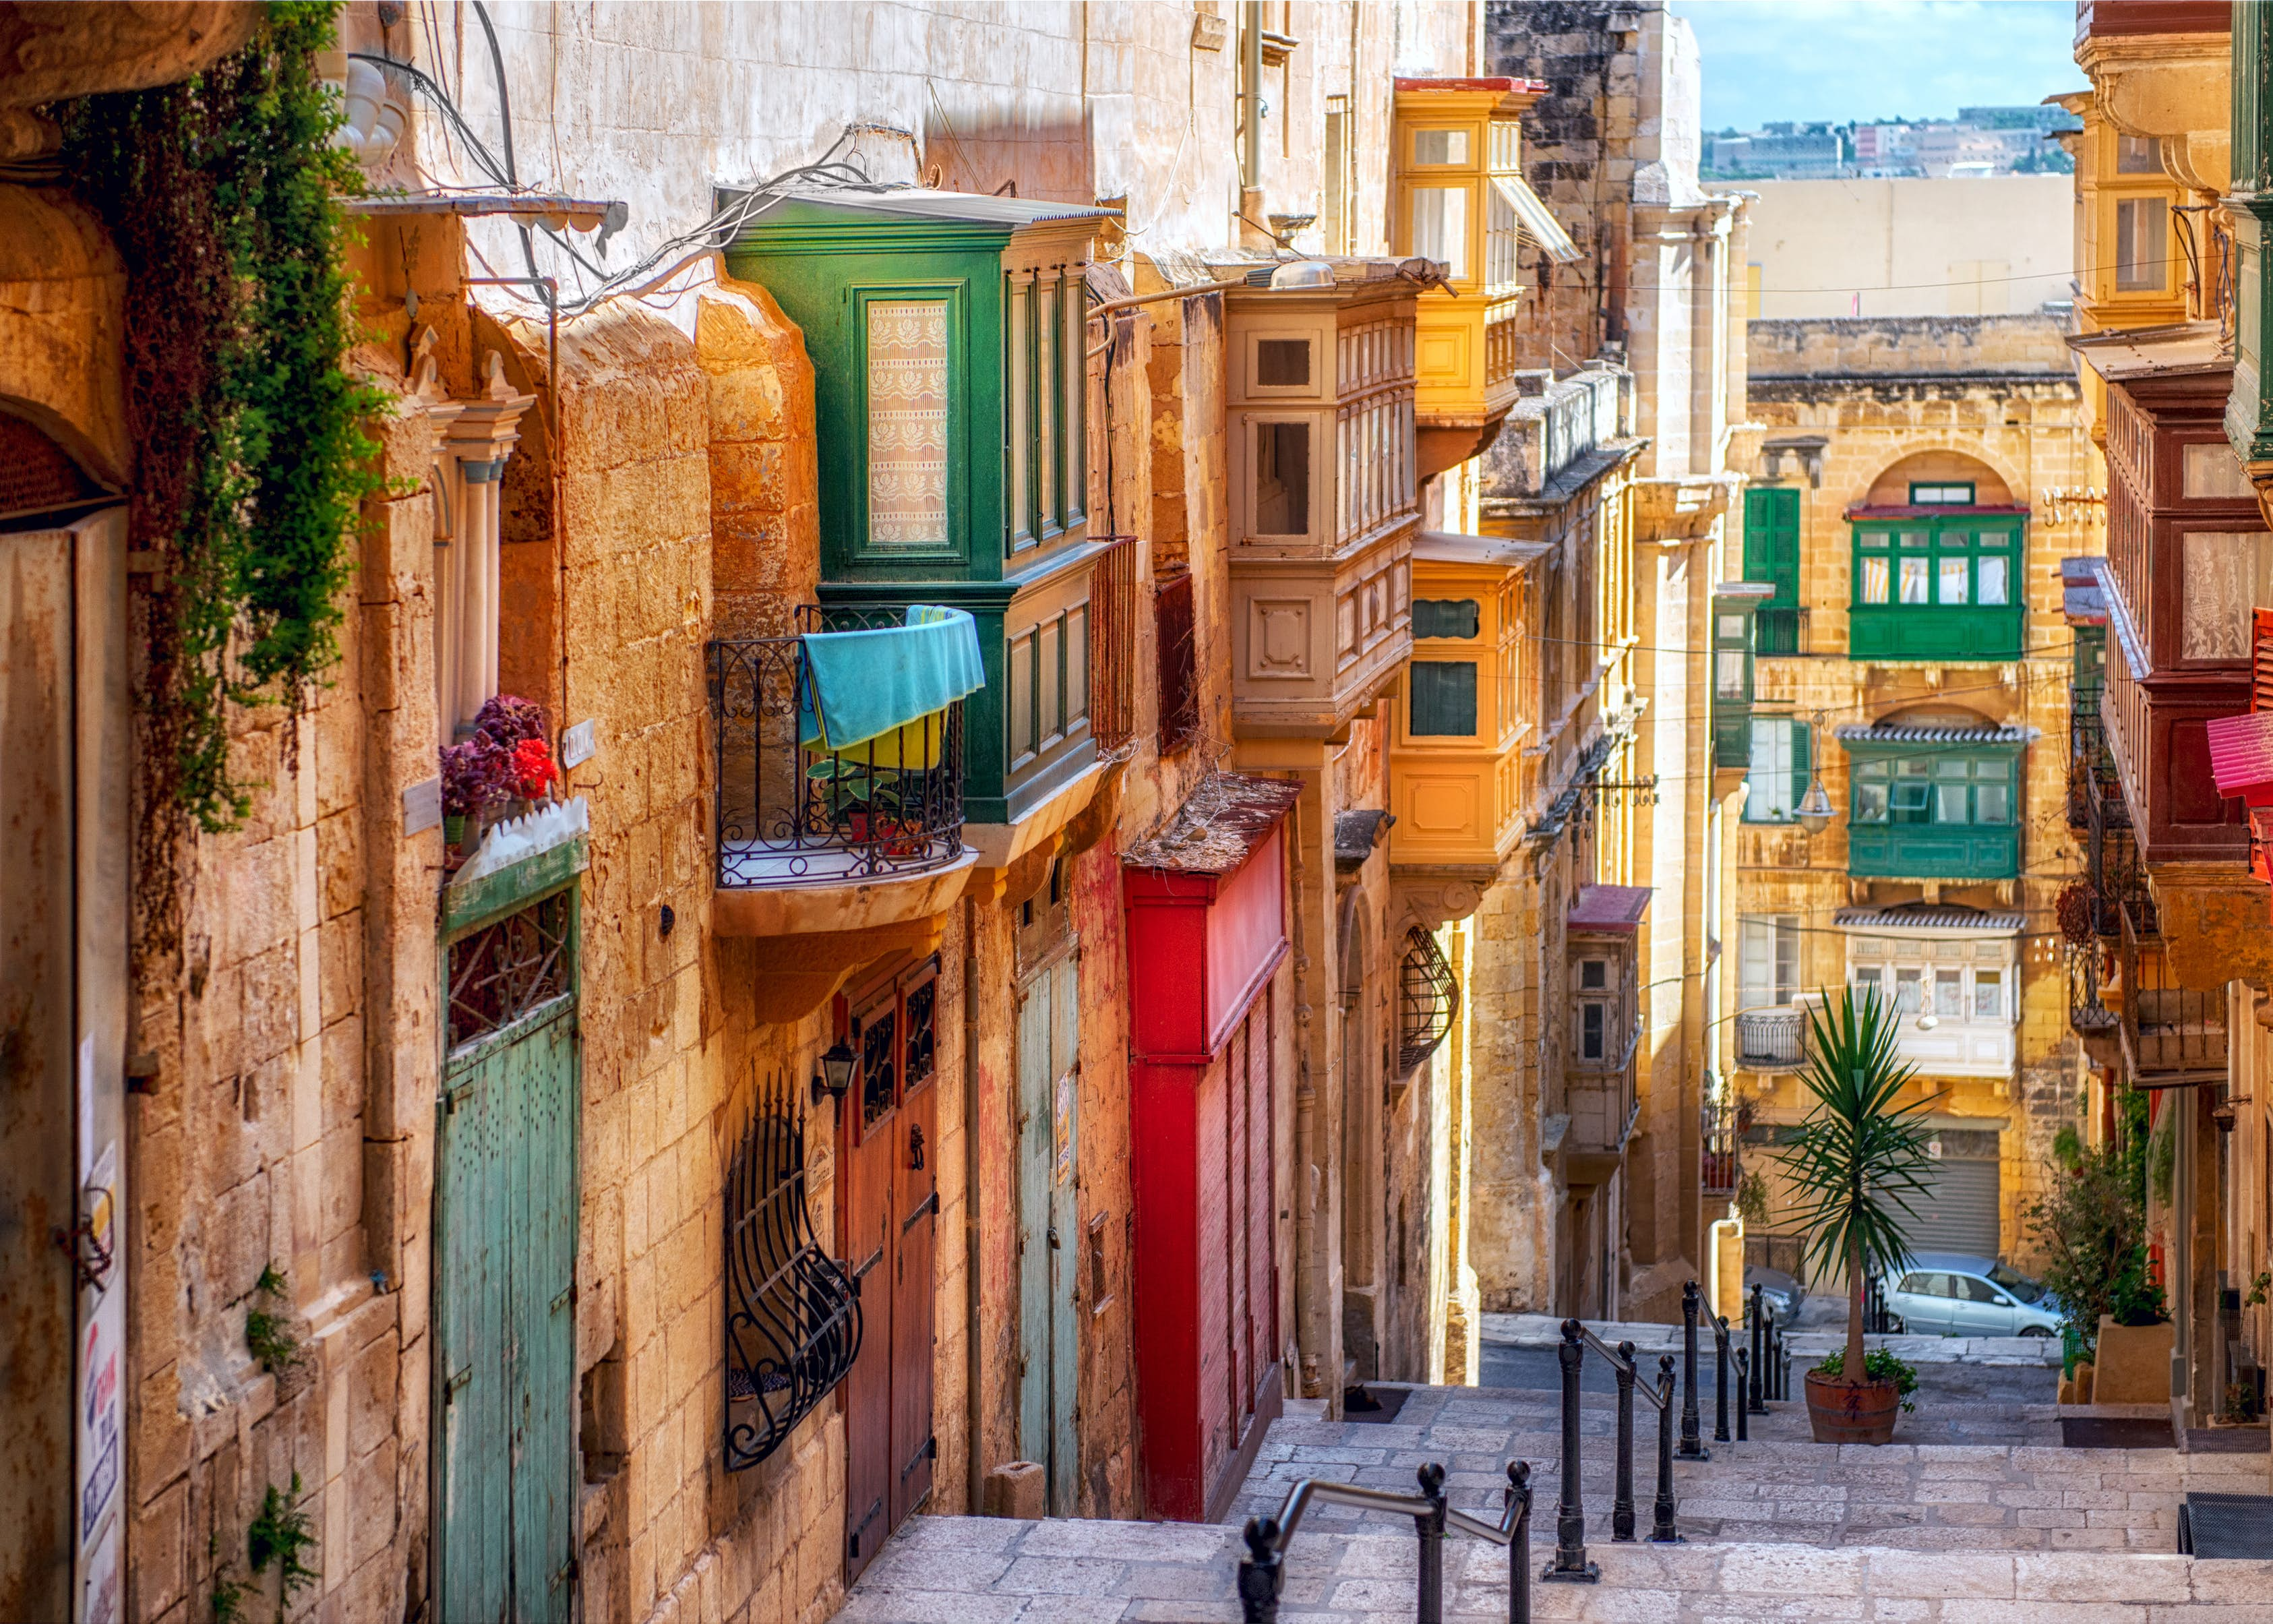 Attractively adorned Maltese townhouses line the streets of Valletta, a European Capital of Culture in 2018 © liseykina / iStockphoto / Getty Images